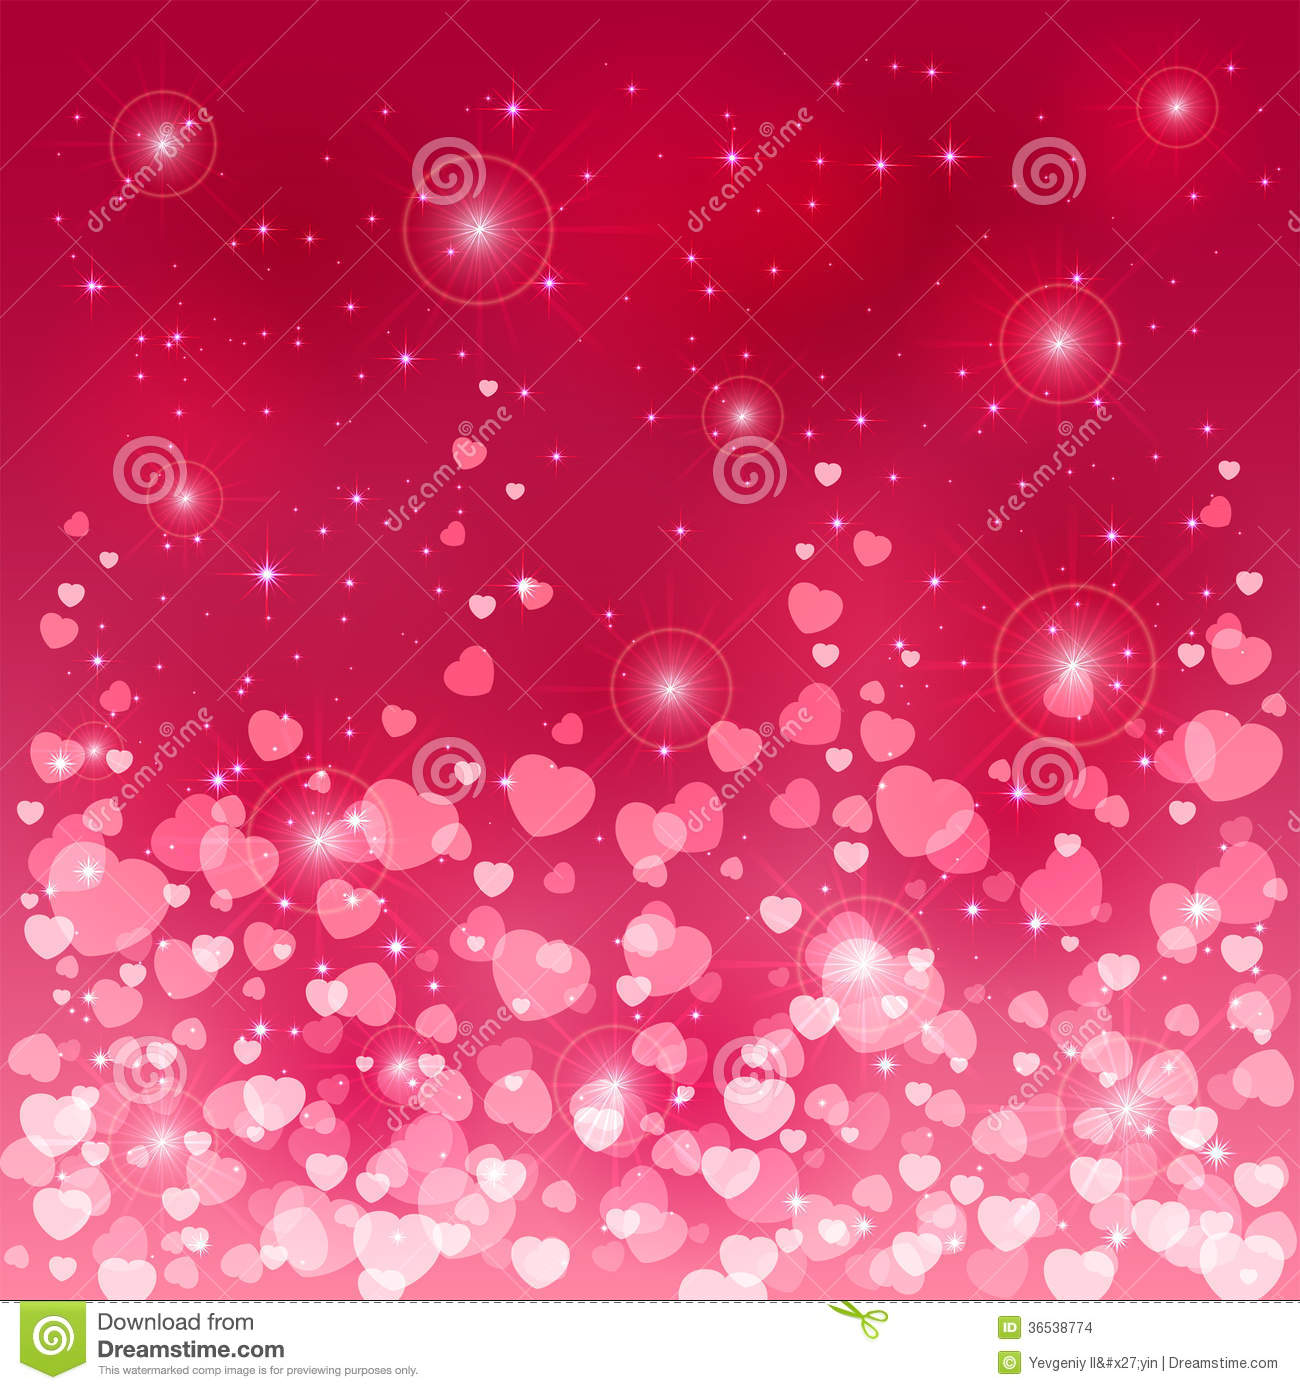 Pink blurry hearts stock vector. Illustration of holiday ...